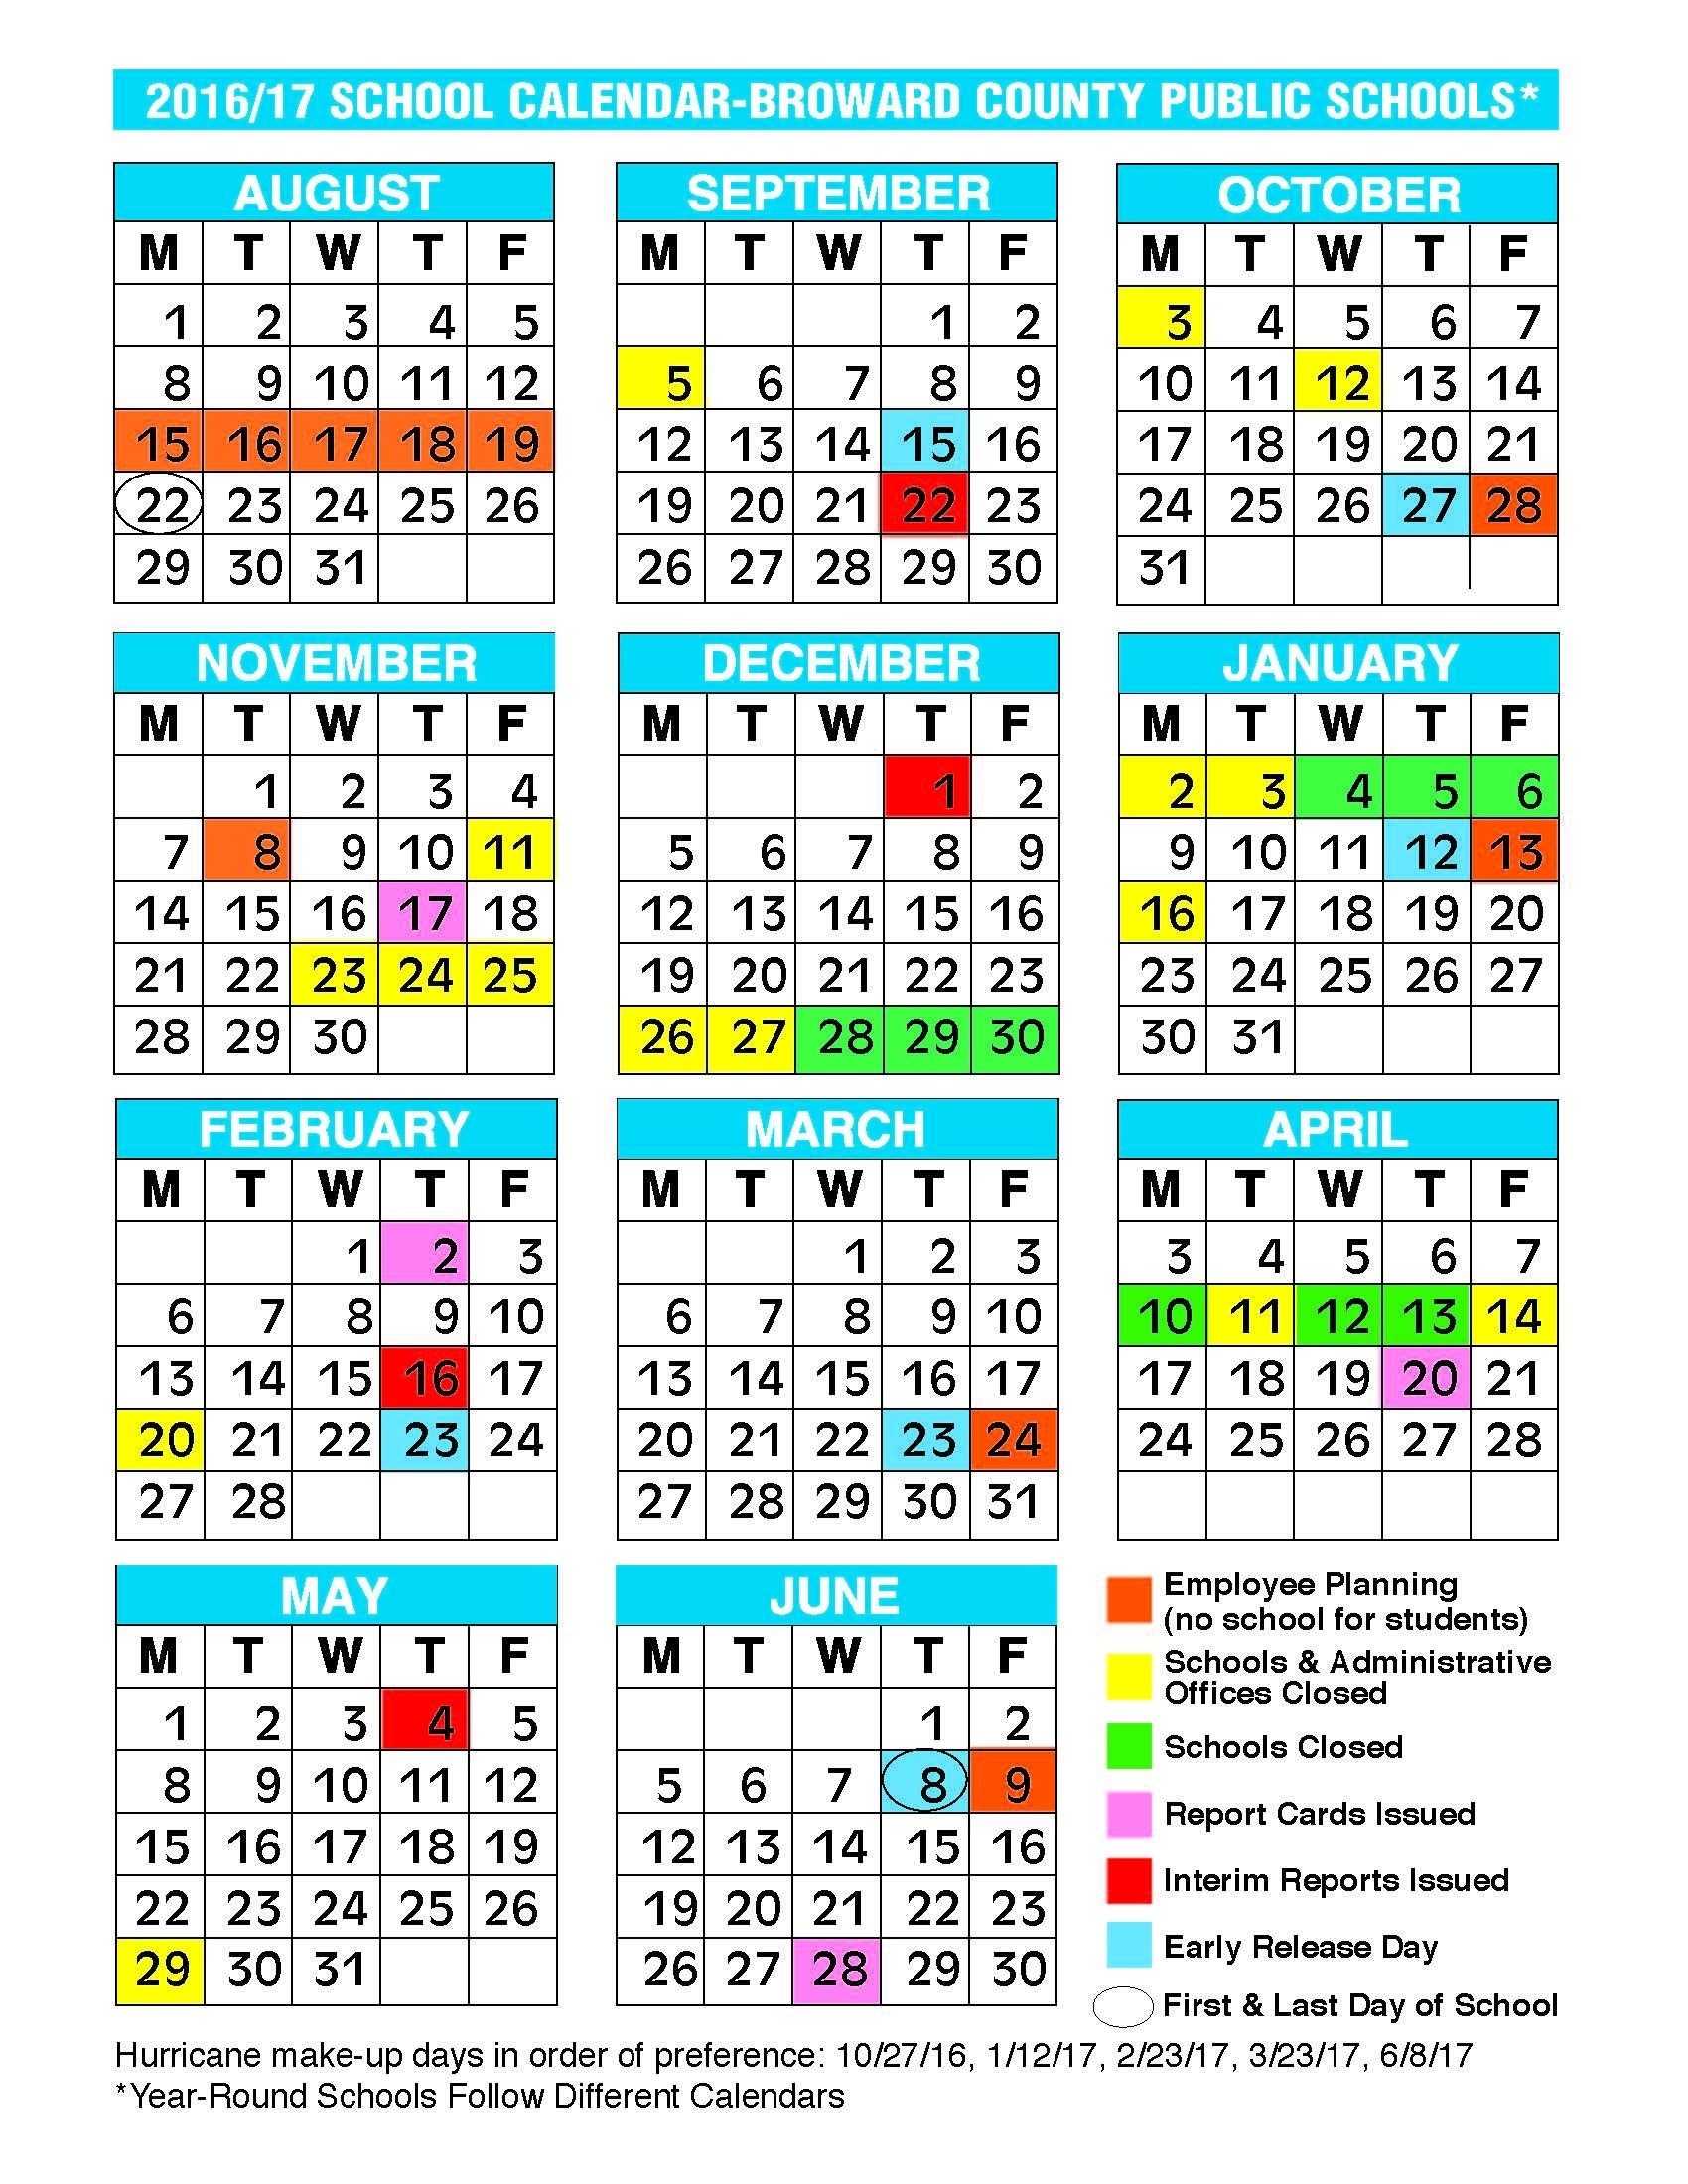 Cupertino School District Holiday Calendar Download For_Calendar Cupertino School District